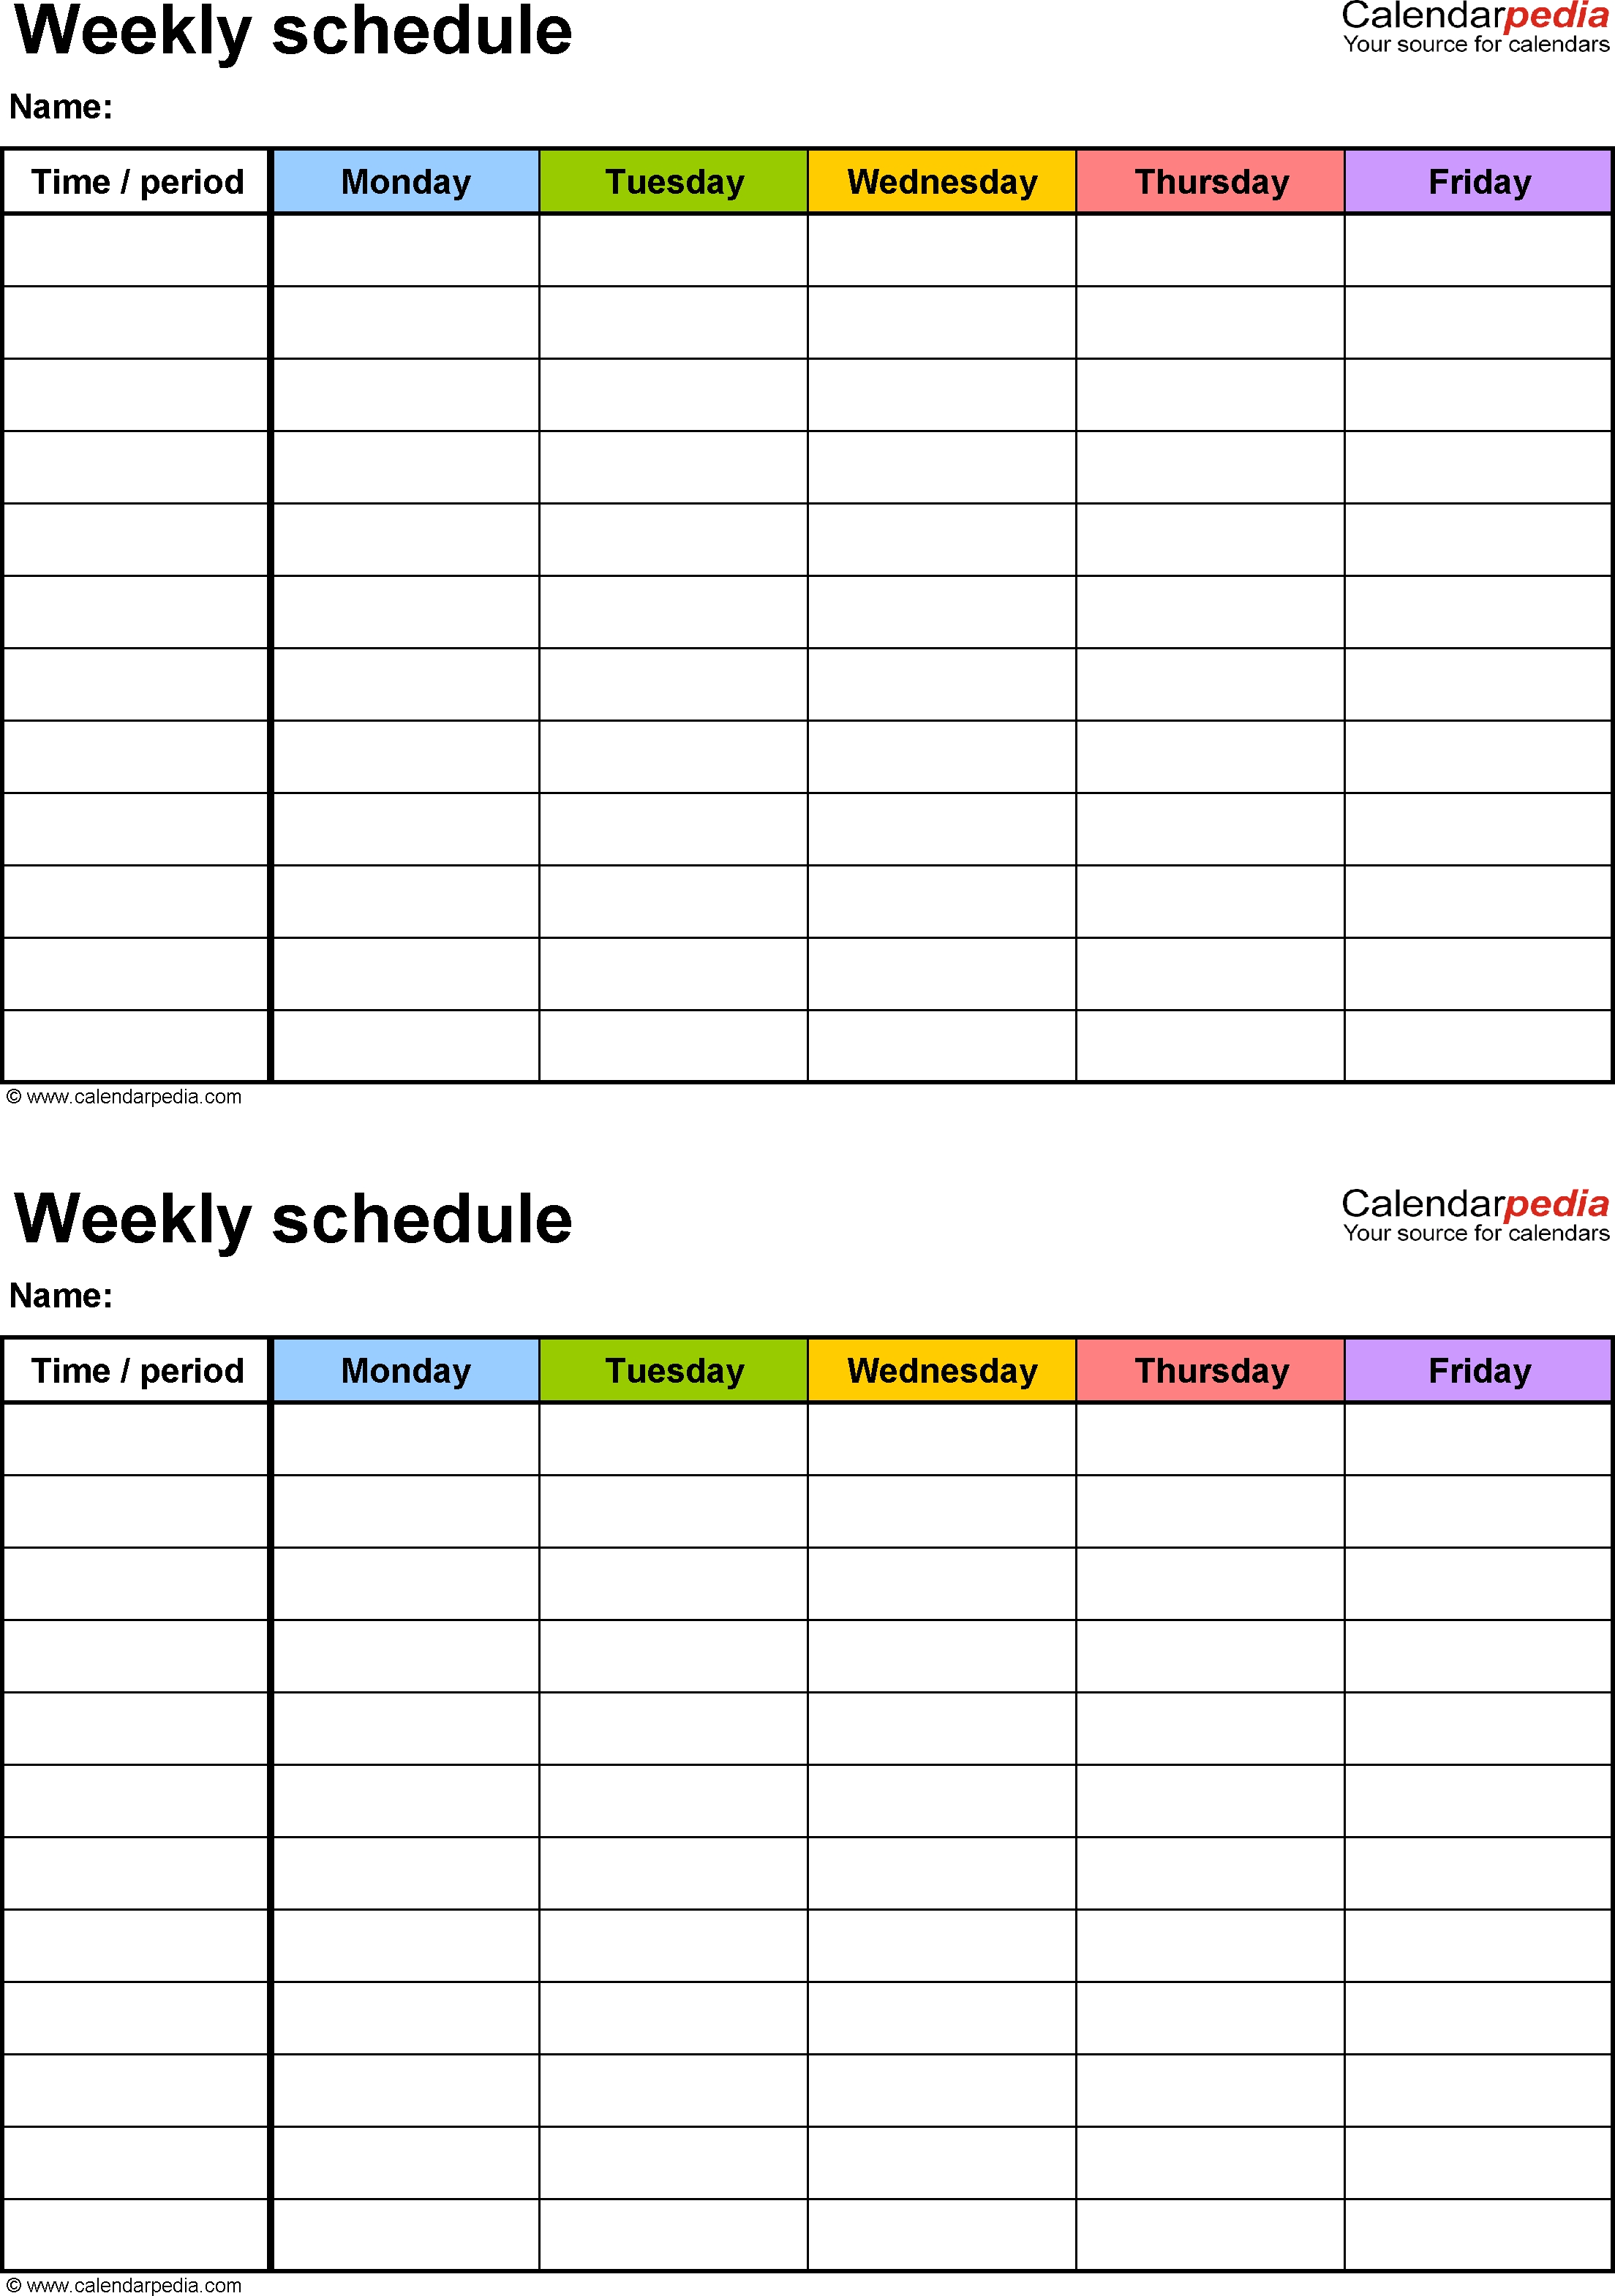 Free Weekly Schedule Templates For Word - 18 Templates in Monday Through Friday Planner Template